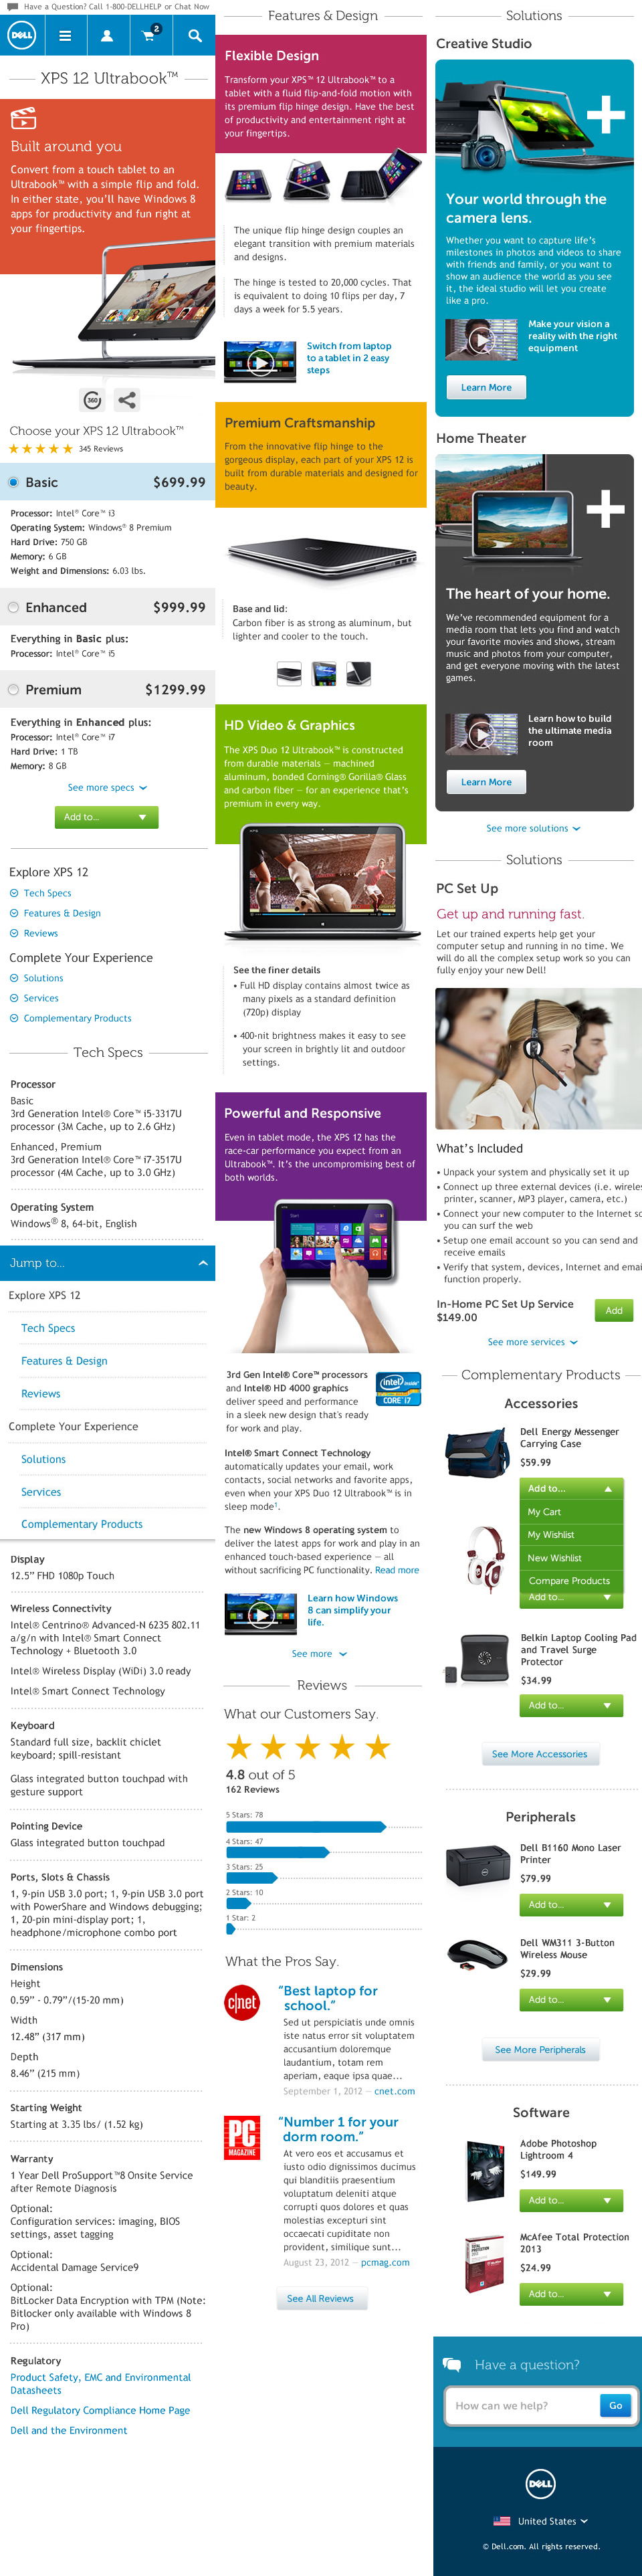 consumer product details page